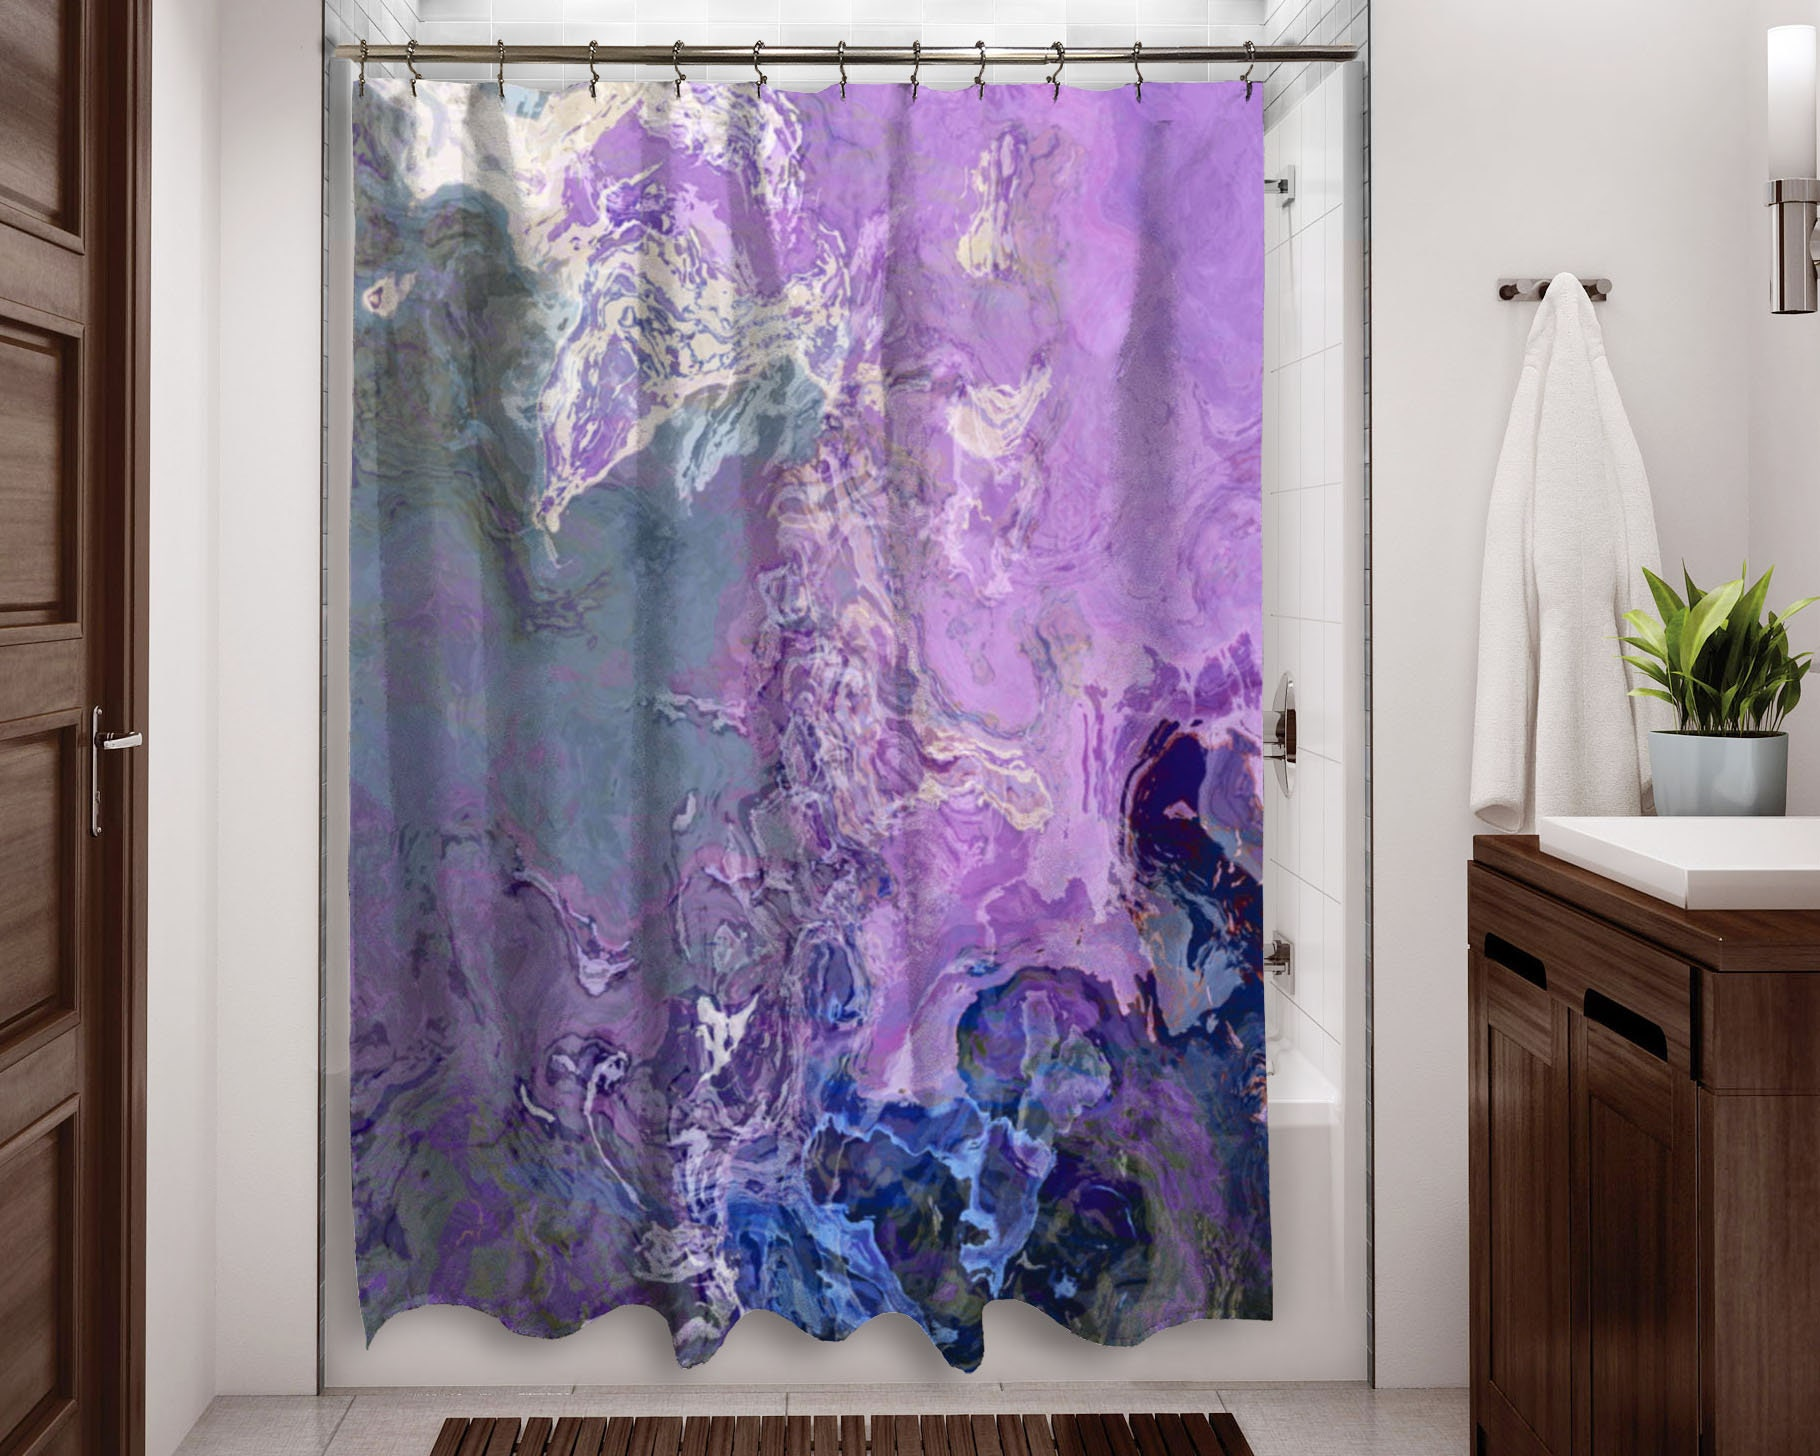 Abstract shower curtain contemporary bathroom decor lavender | Etsy